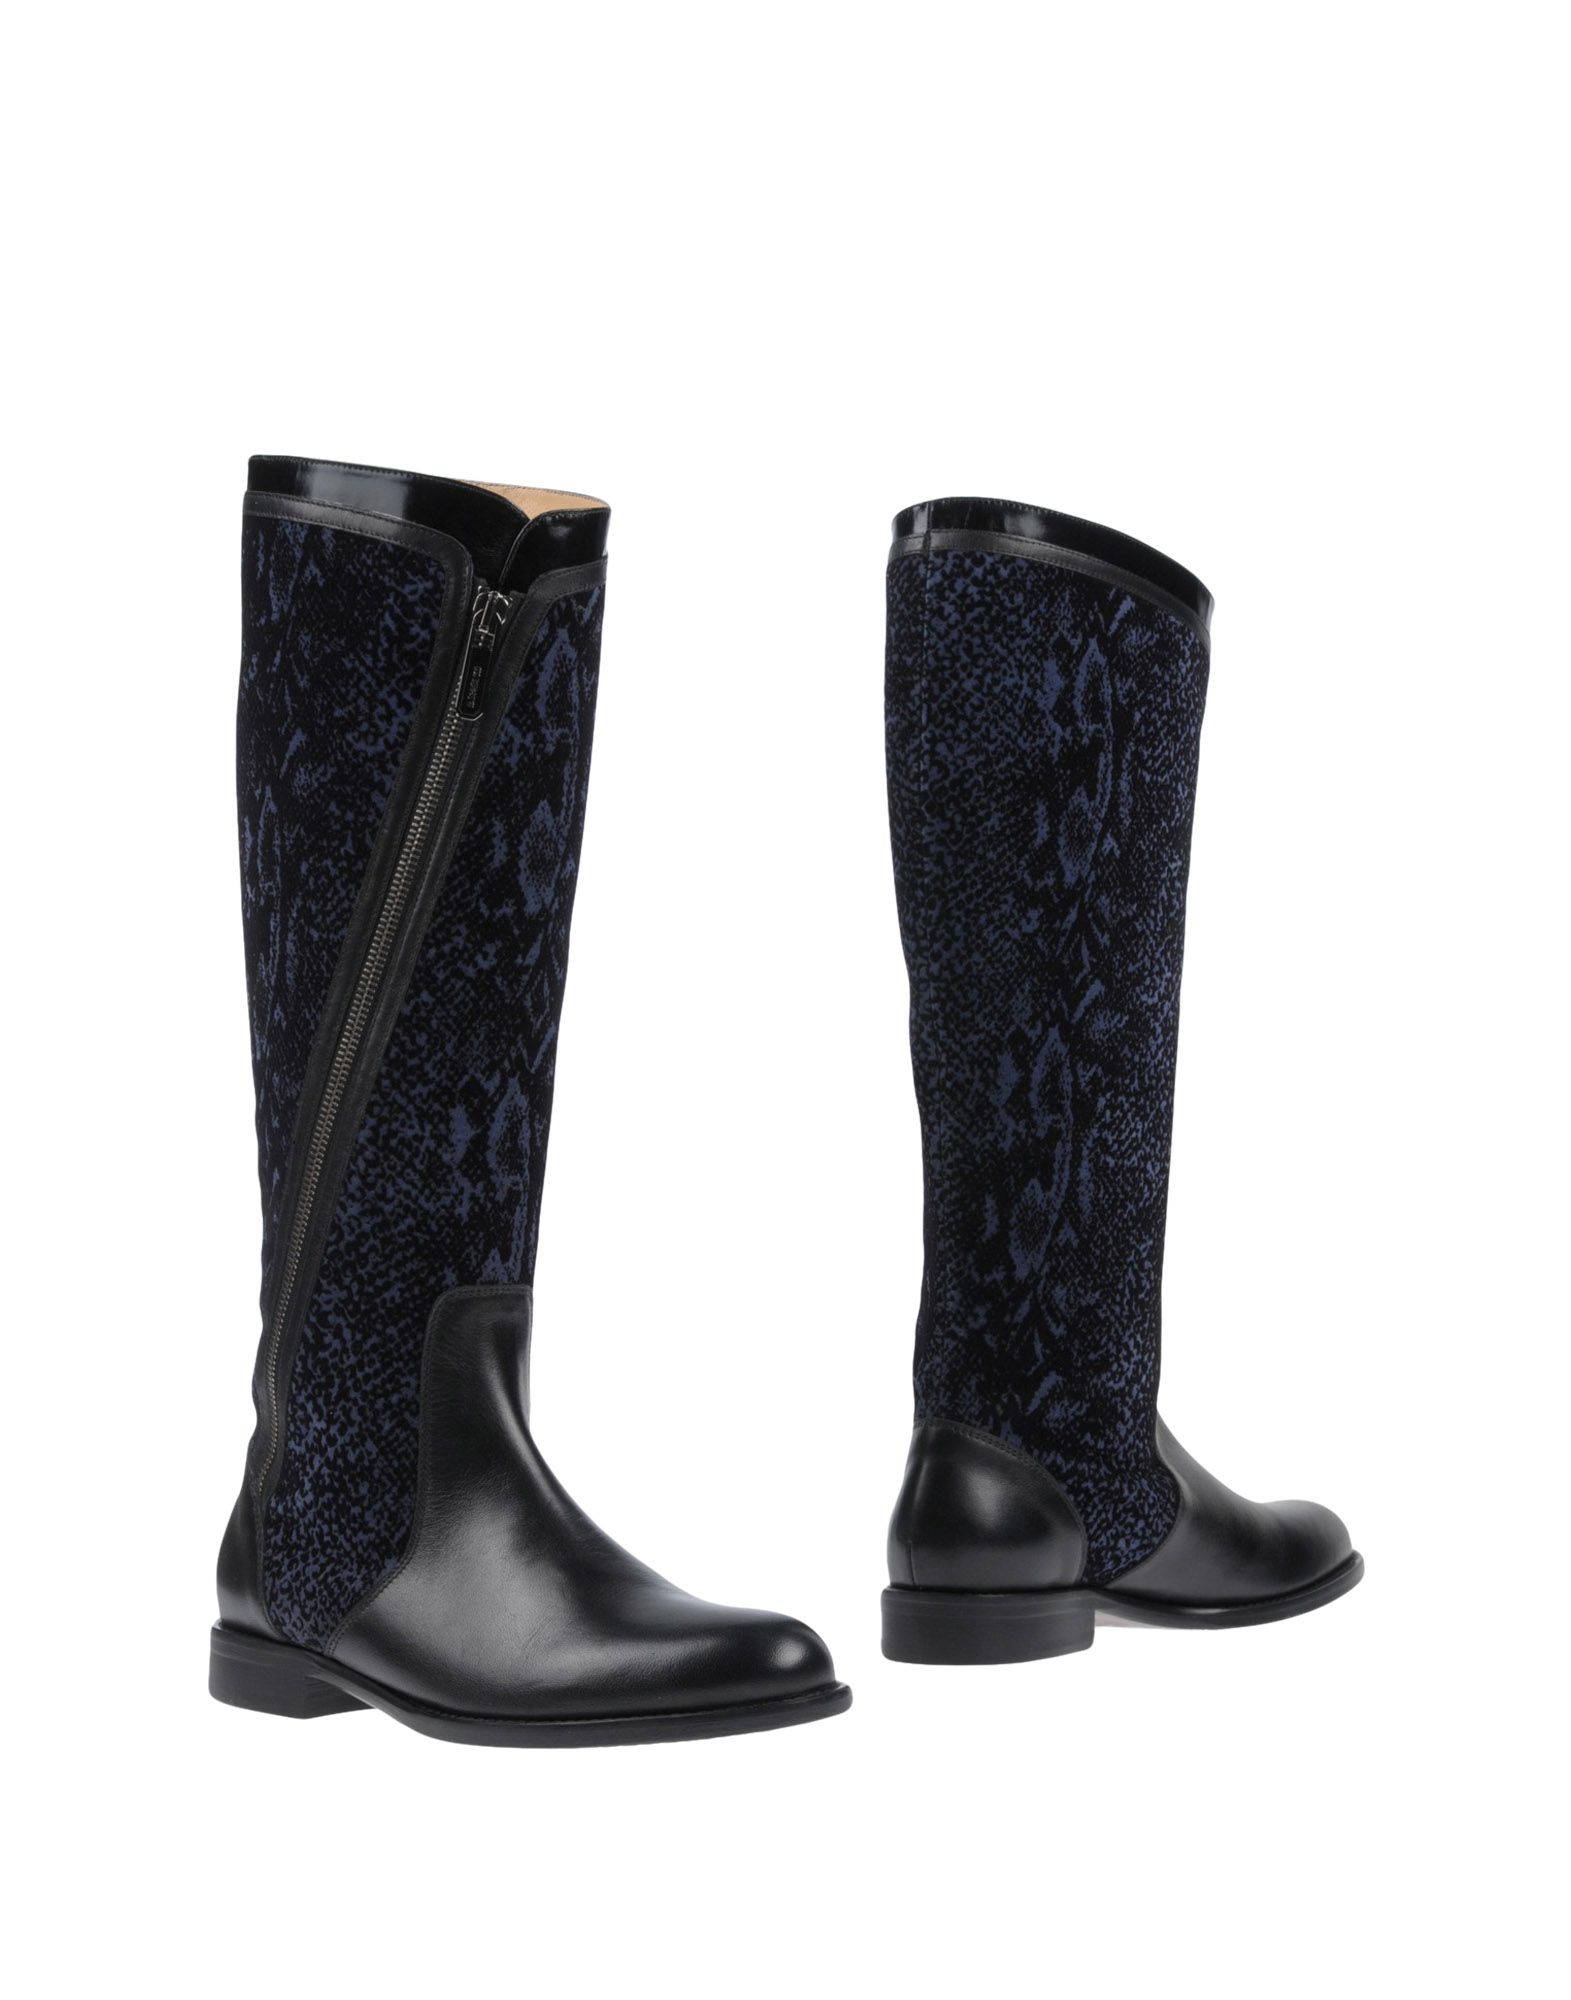 A.TESTONI Boots in Dark Blue